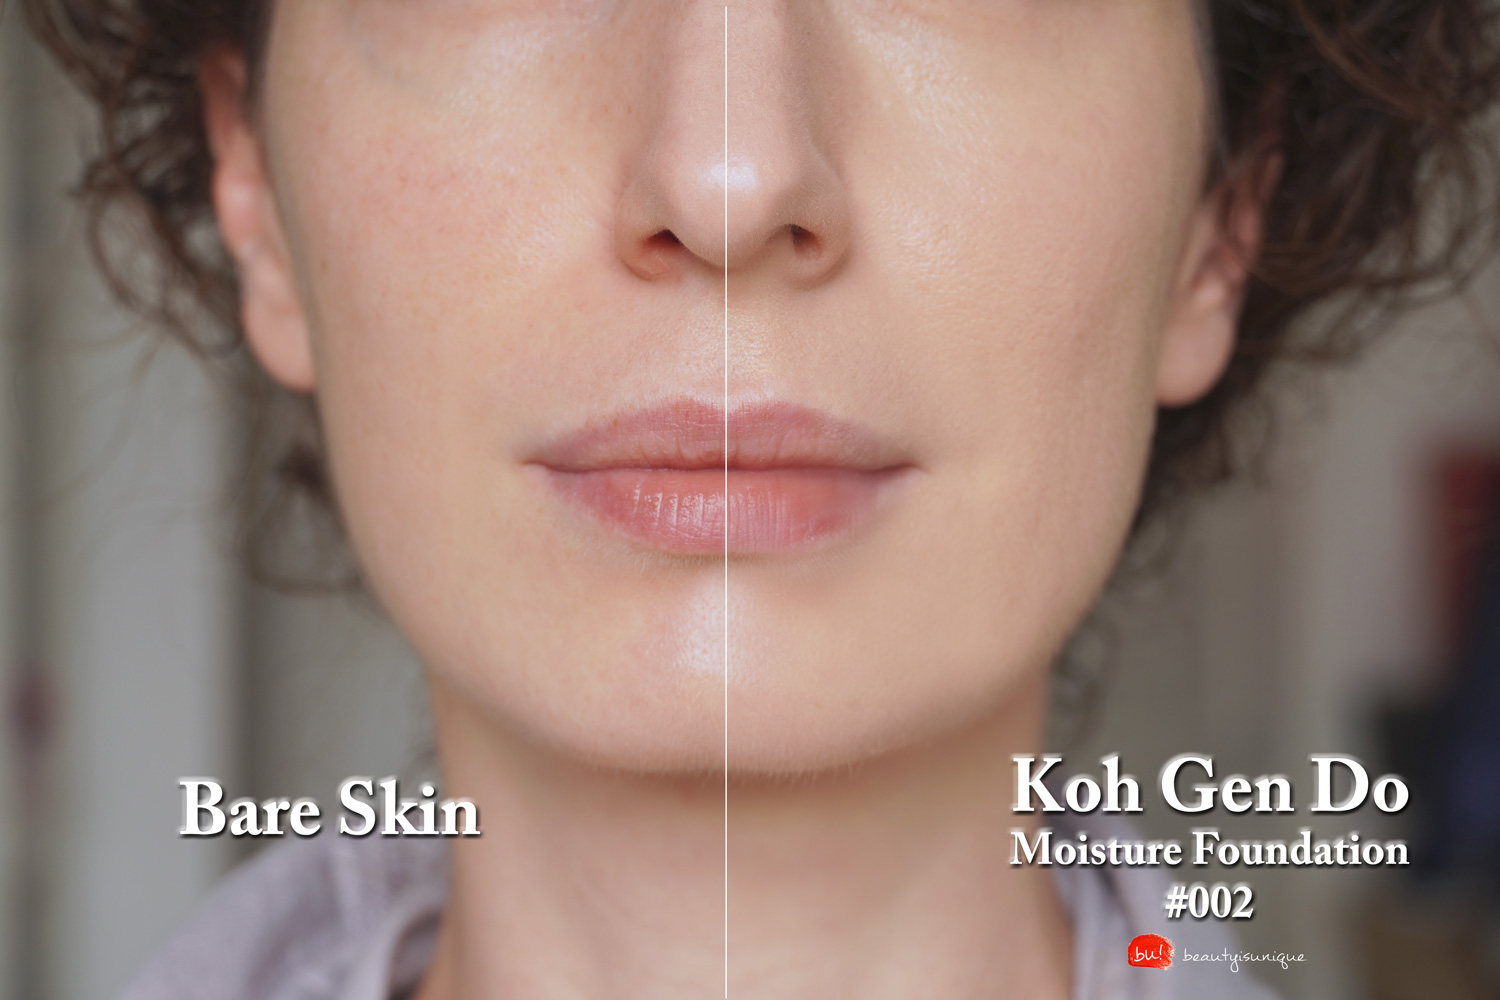 loh-gen-do-moisture-foundation